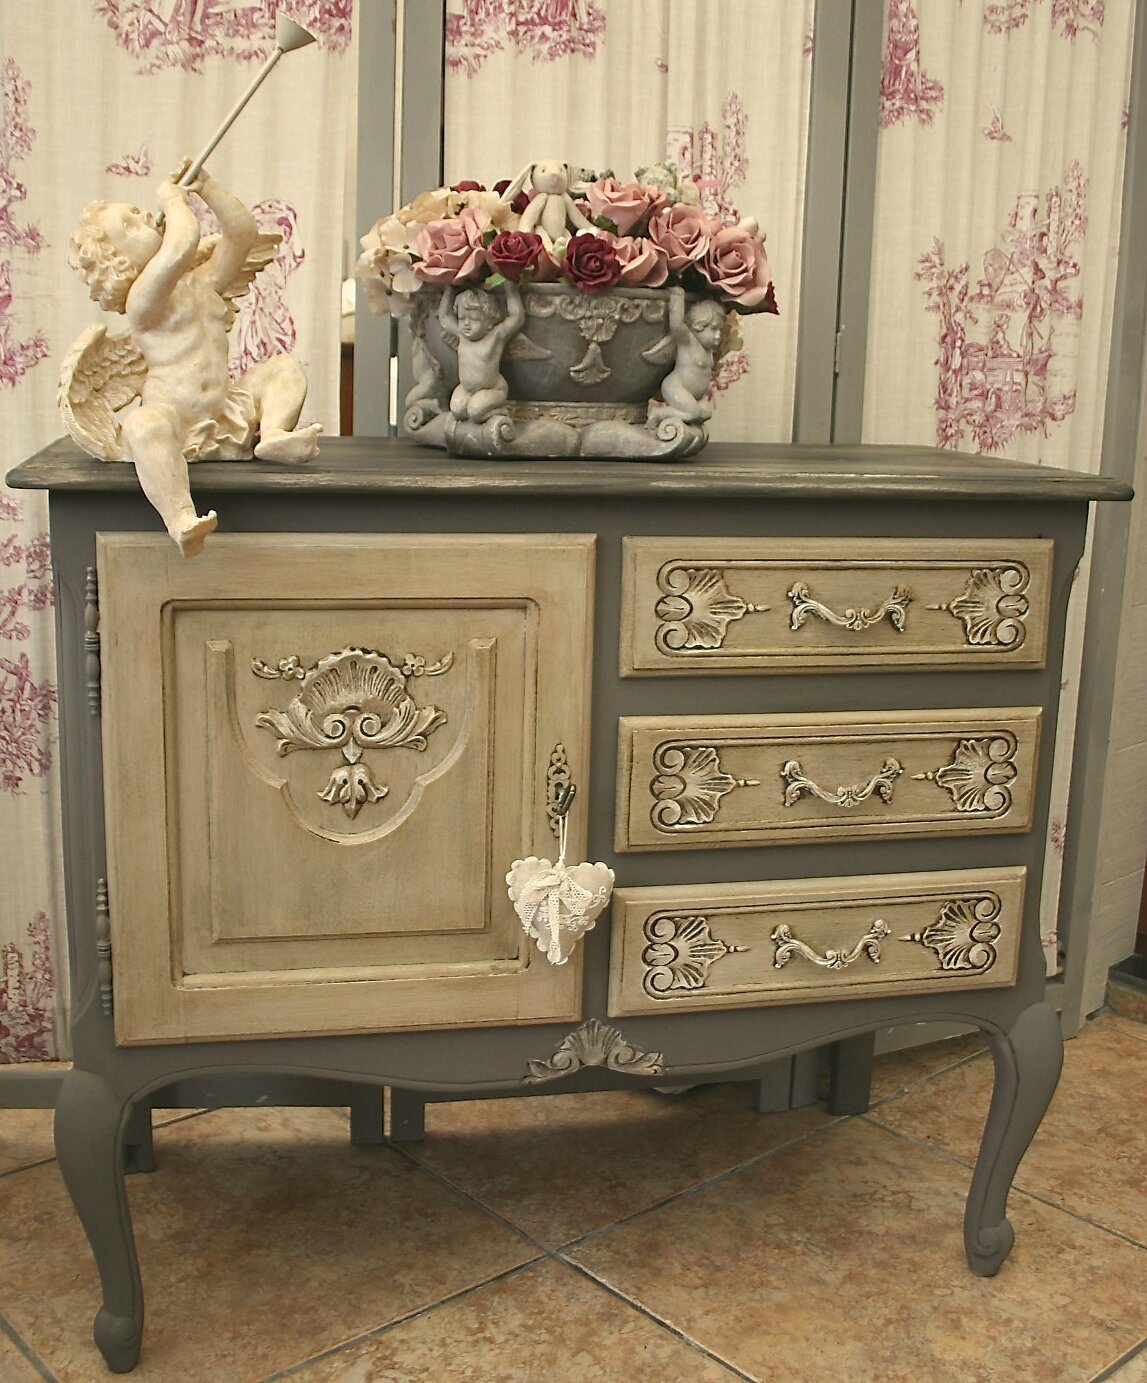 Adorable meuble en ch ne de style louis xv commode patin e for Meuble style louis 15